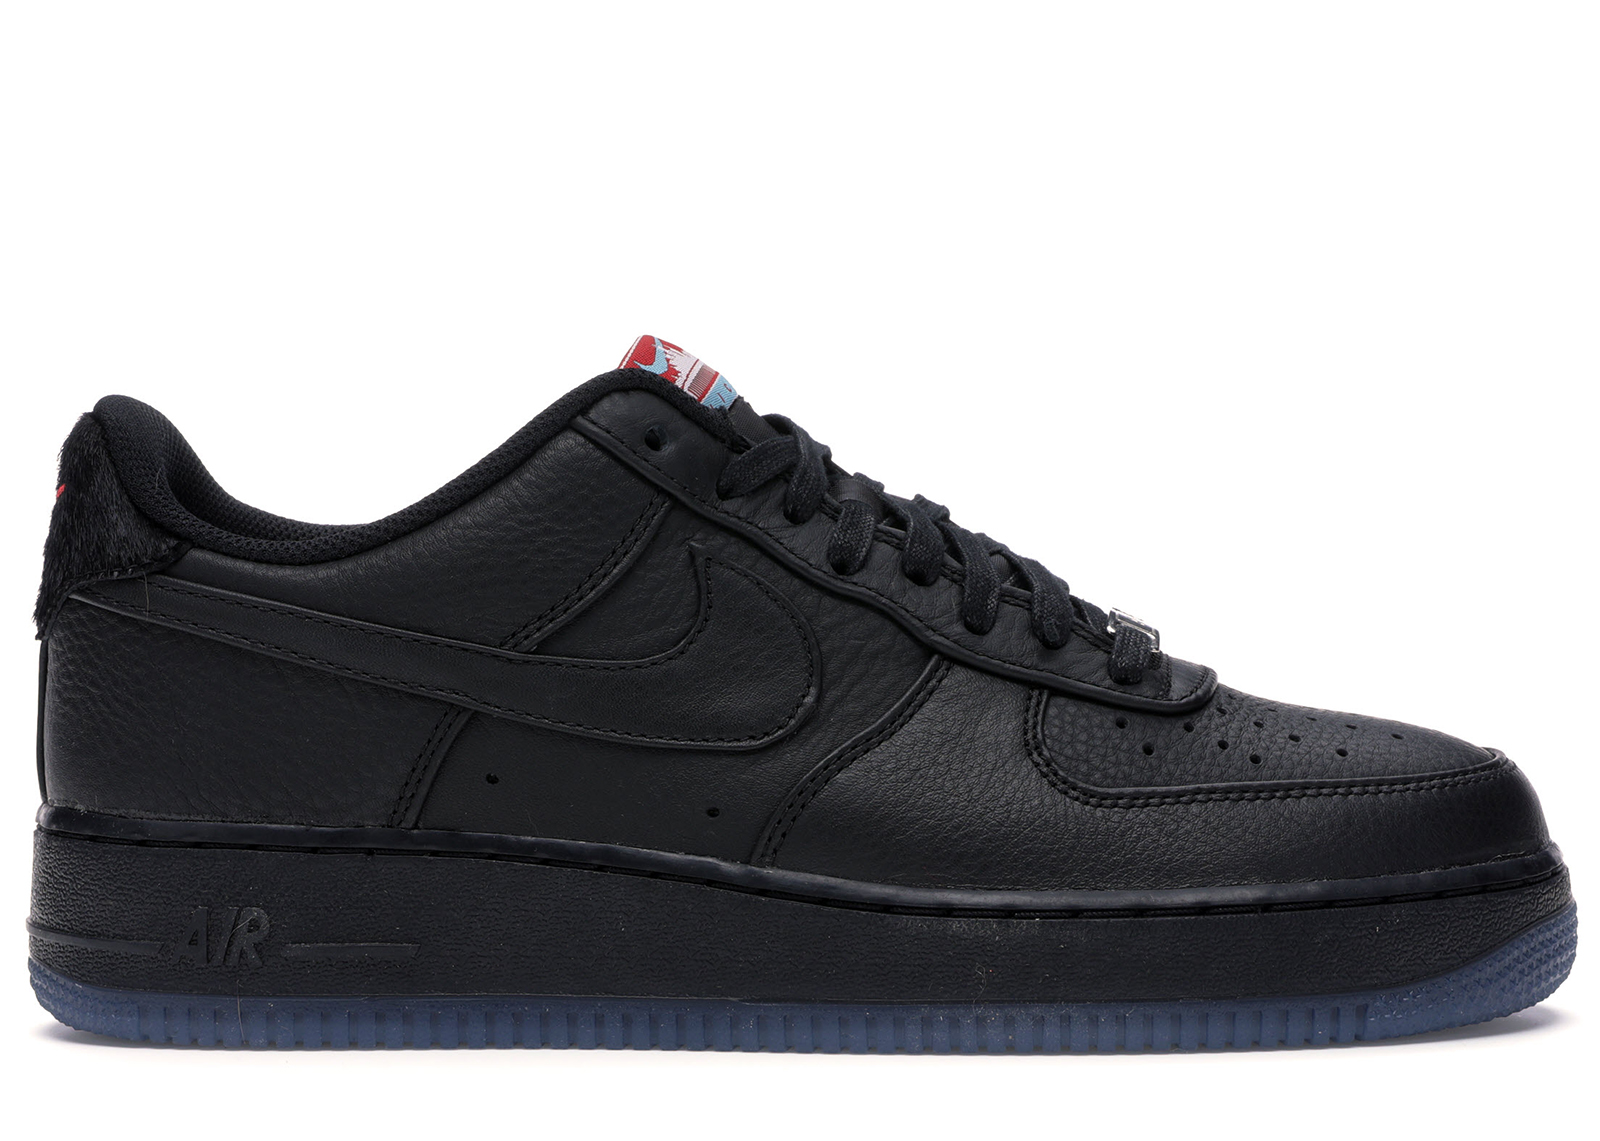 Nike Air Force 1 Low Chicago (2019)